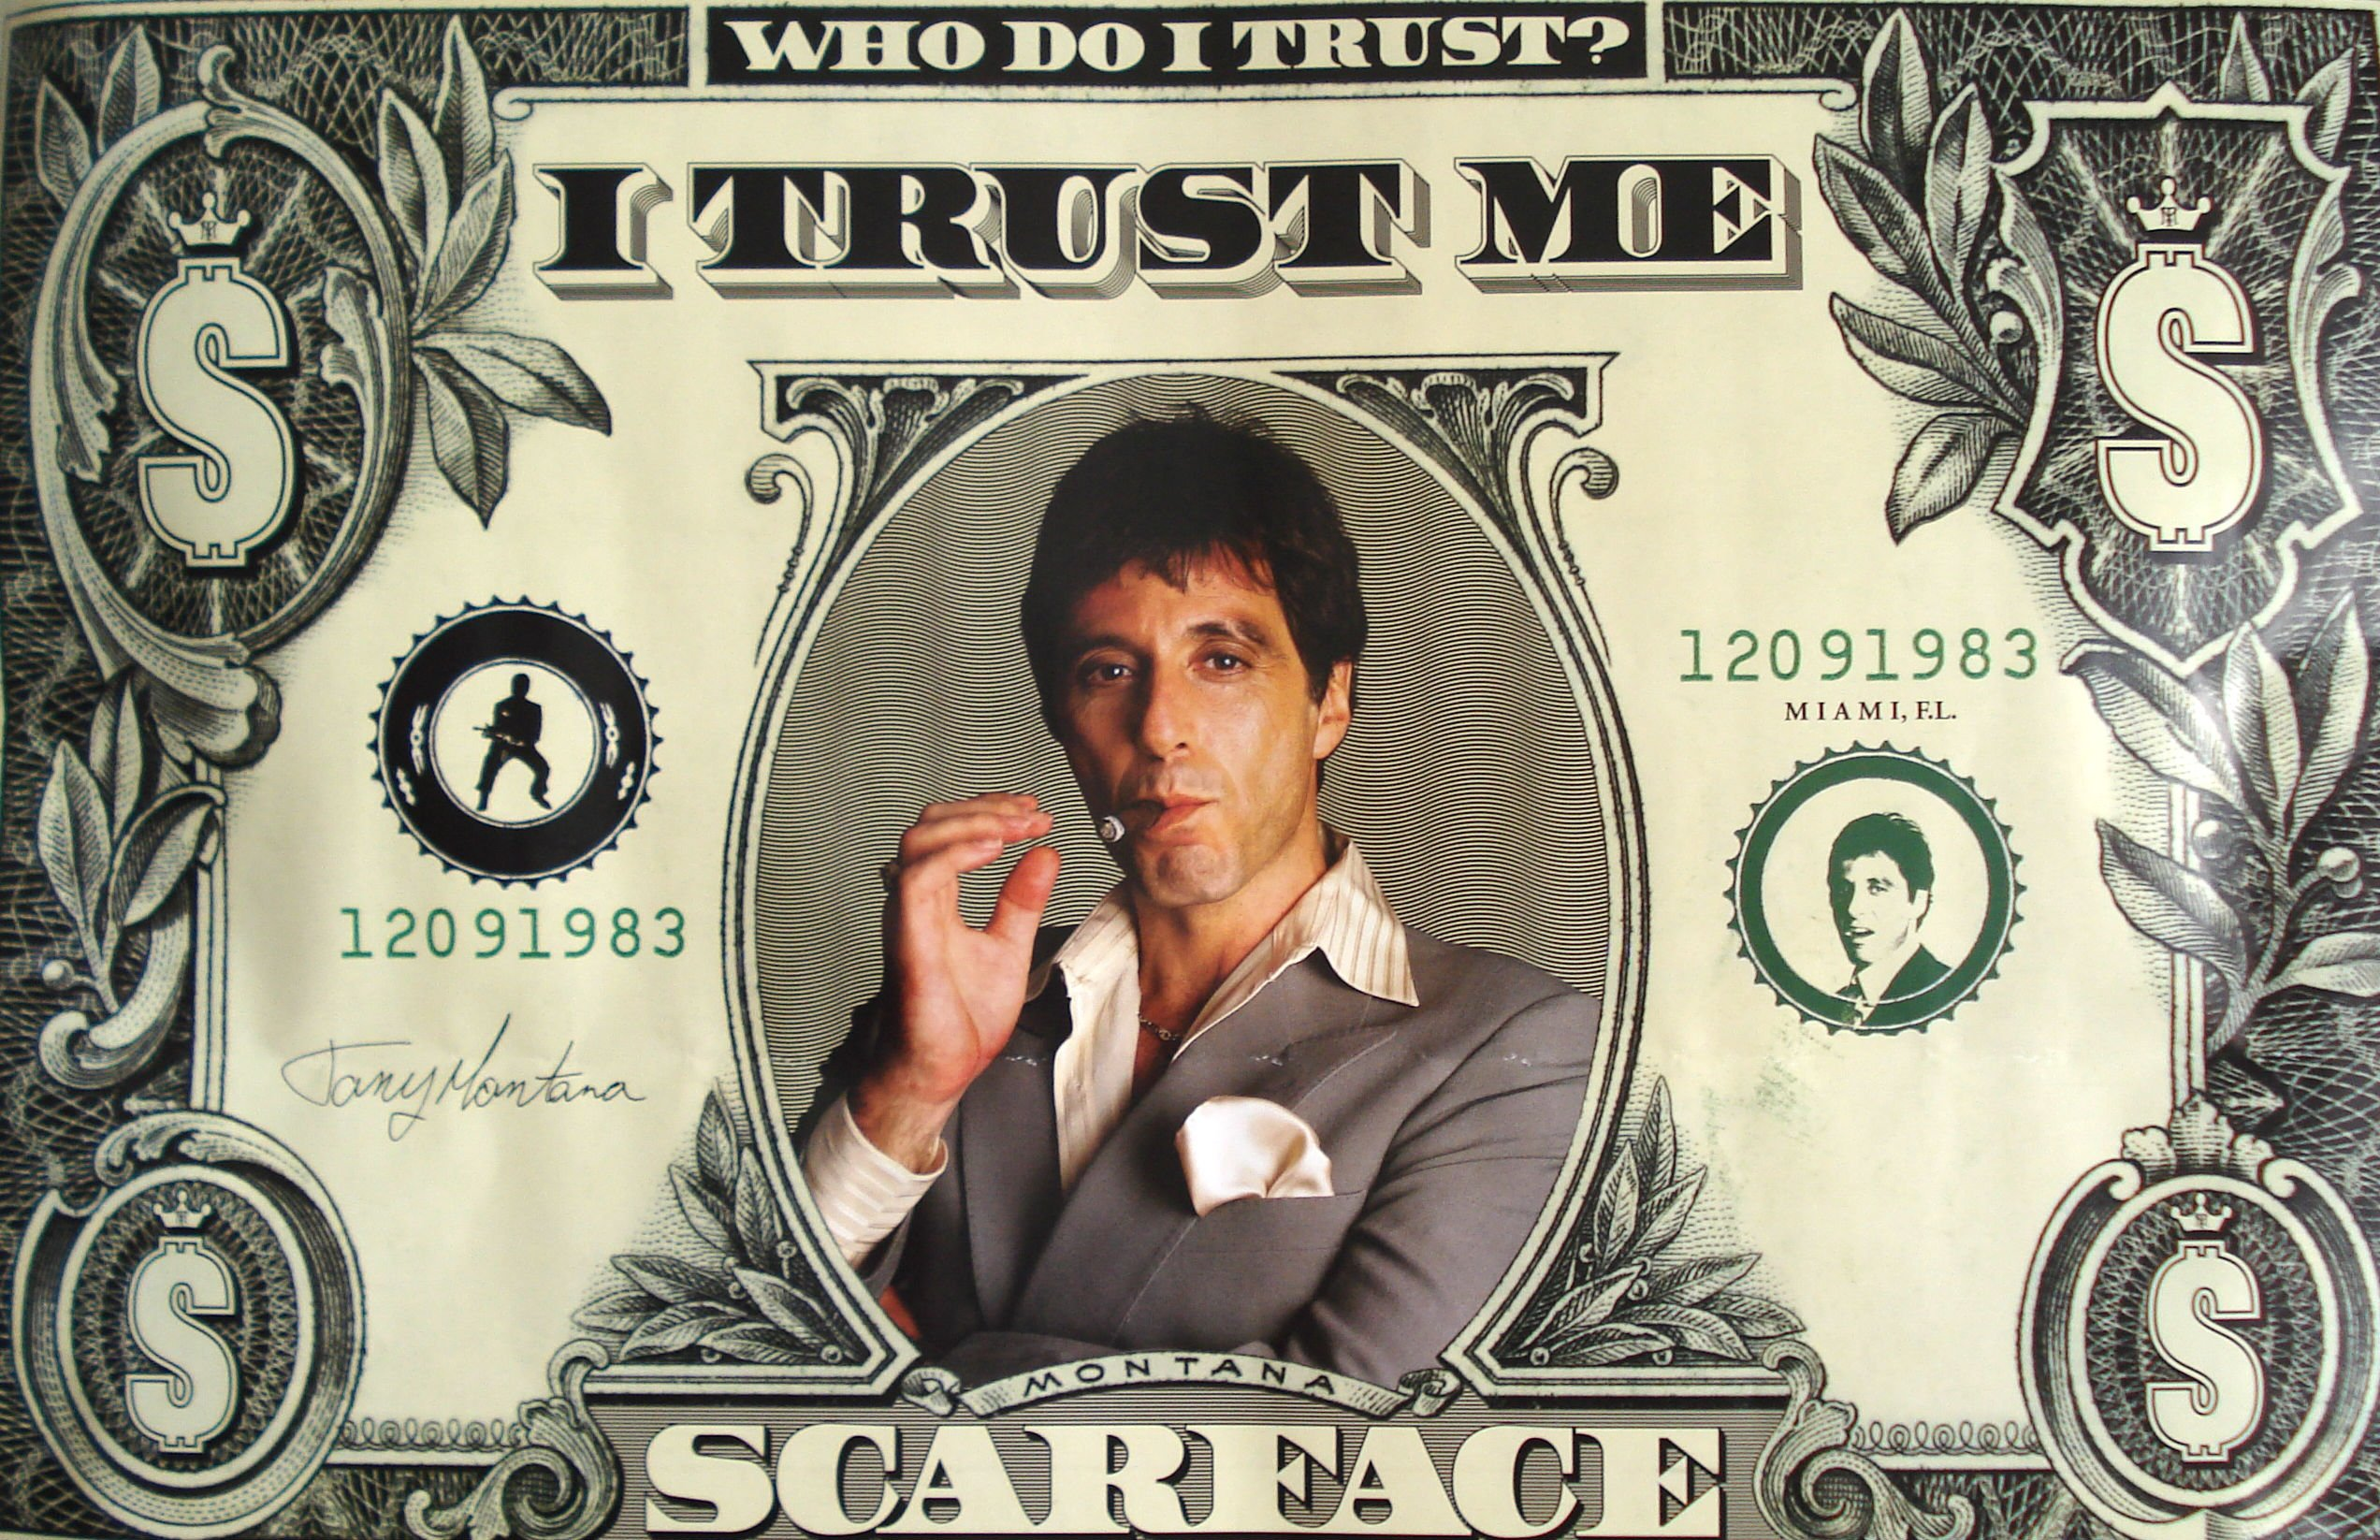 Scarface Wallpaper For Bedroom Scarface Wallpaper For Bedroom Graybijius